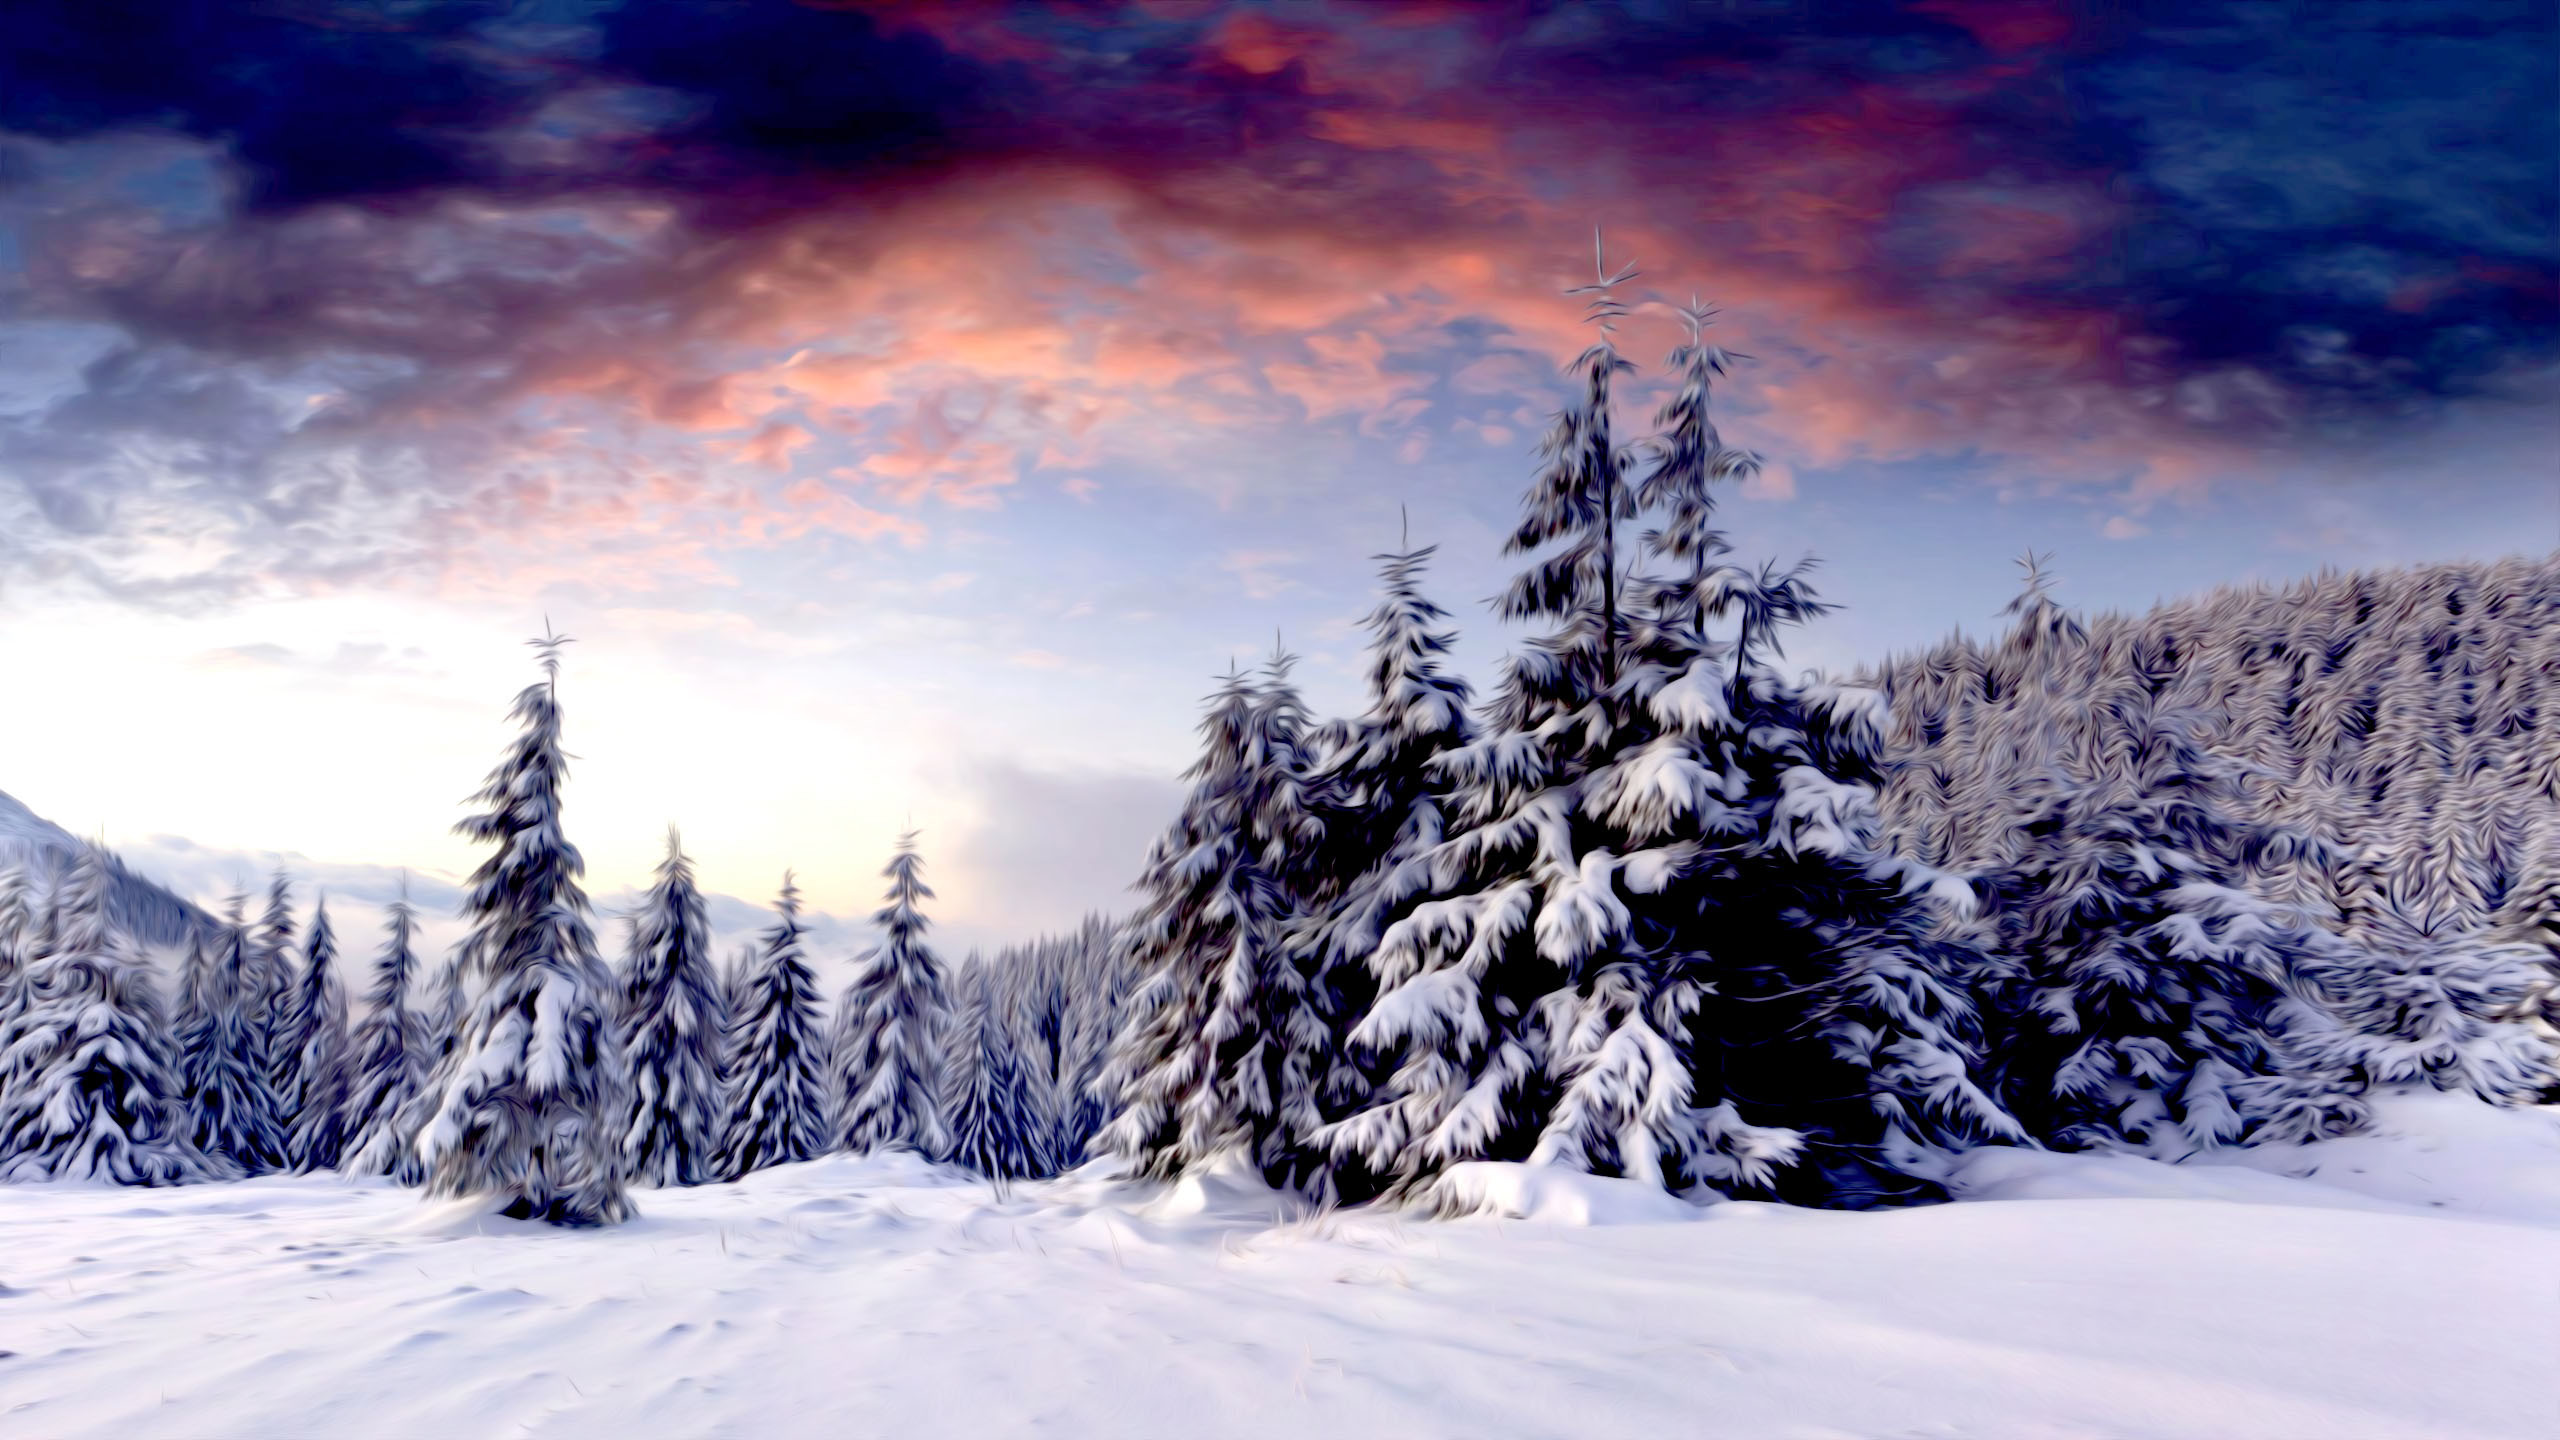 Wallpaper Desktop Winter Scenes (53+ Images